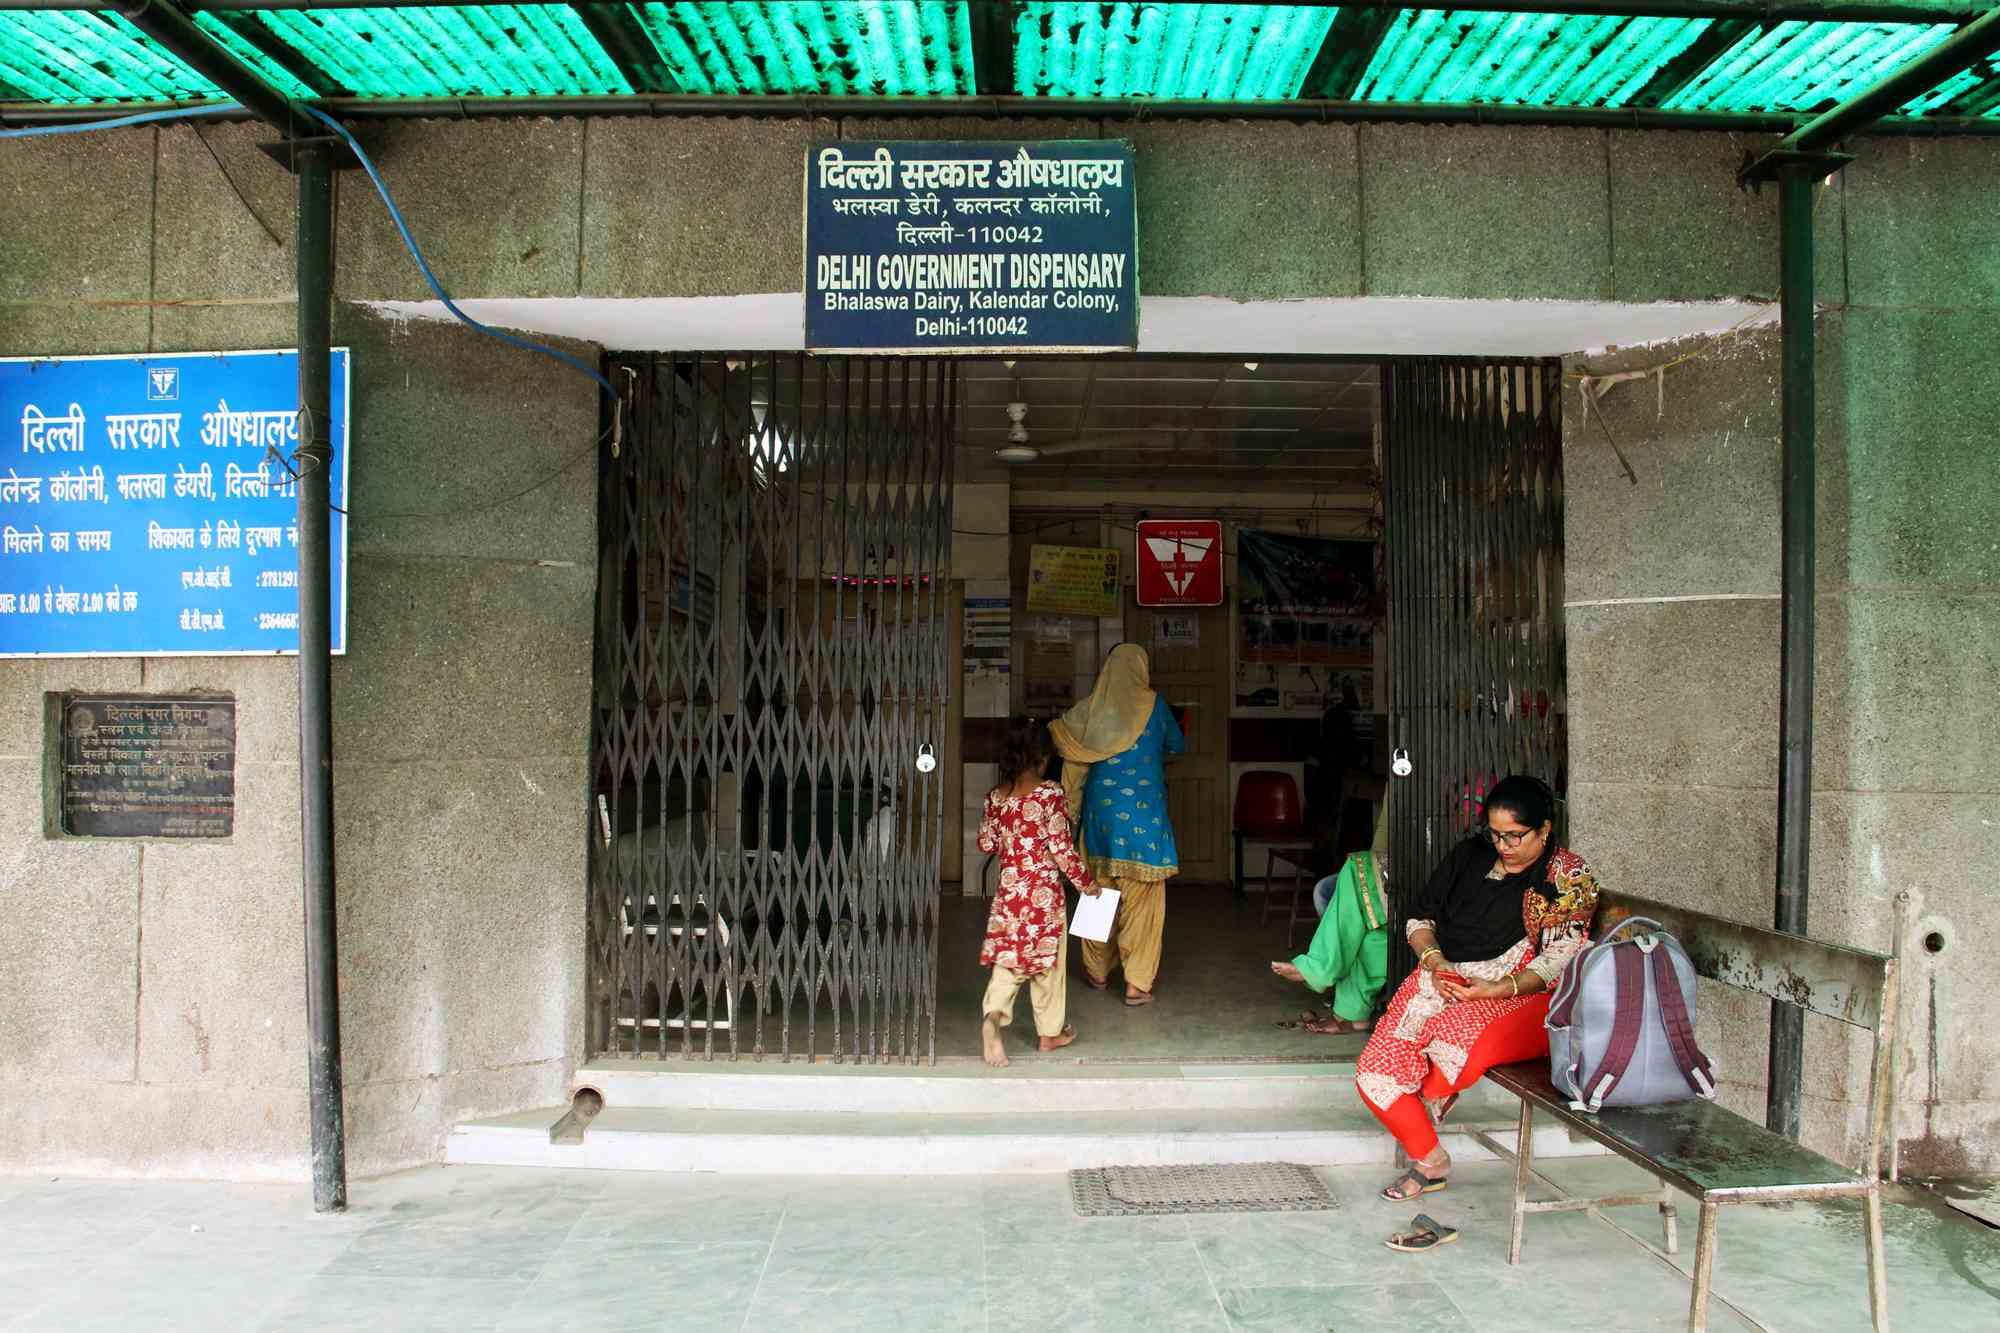 The government dispensary at Bhalswa dairy sees an average of 250 patients a day.